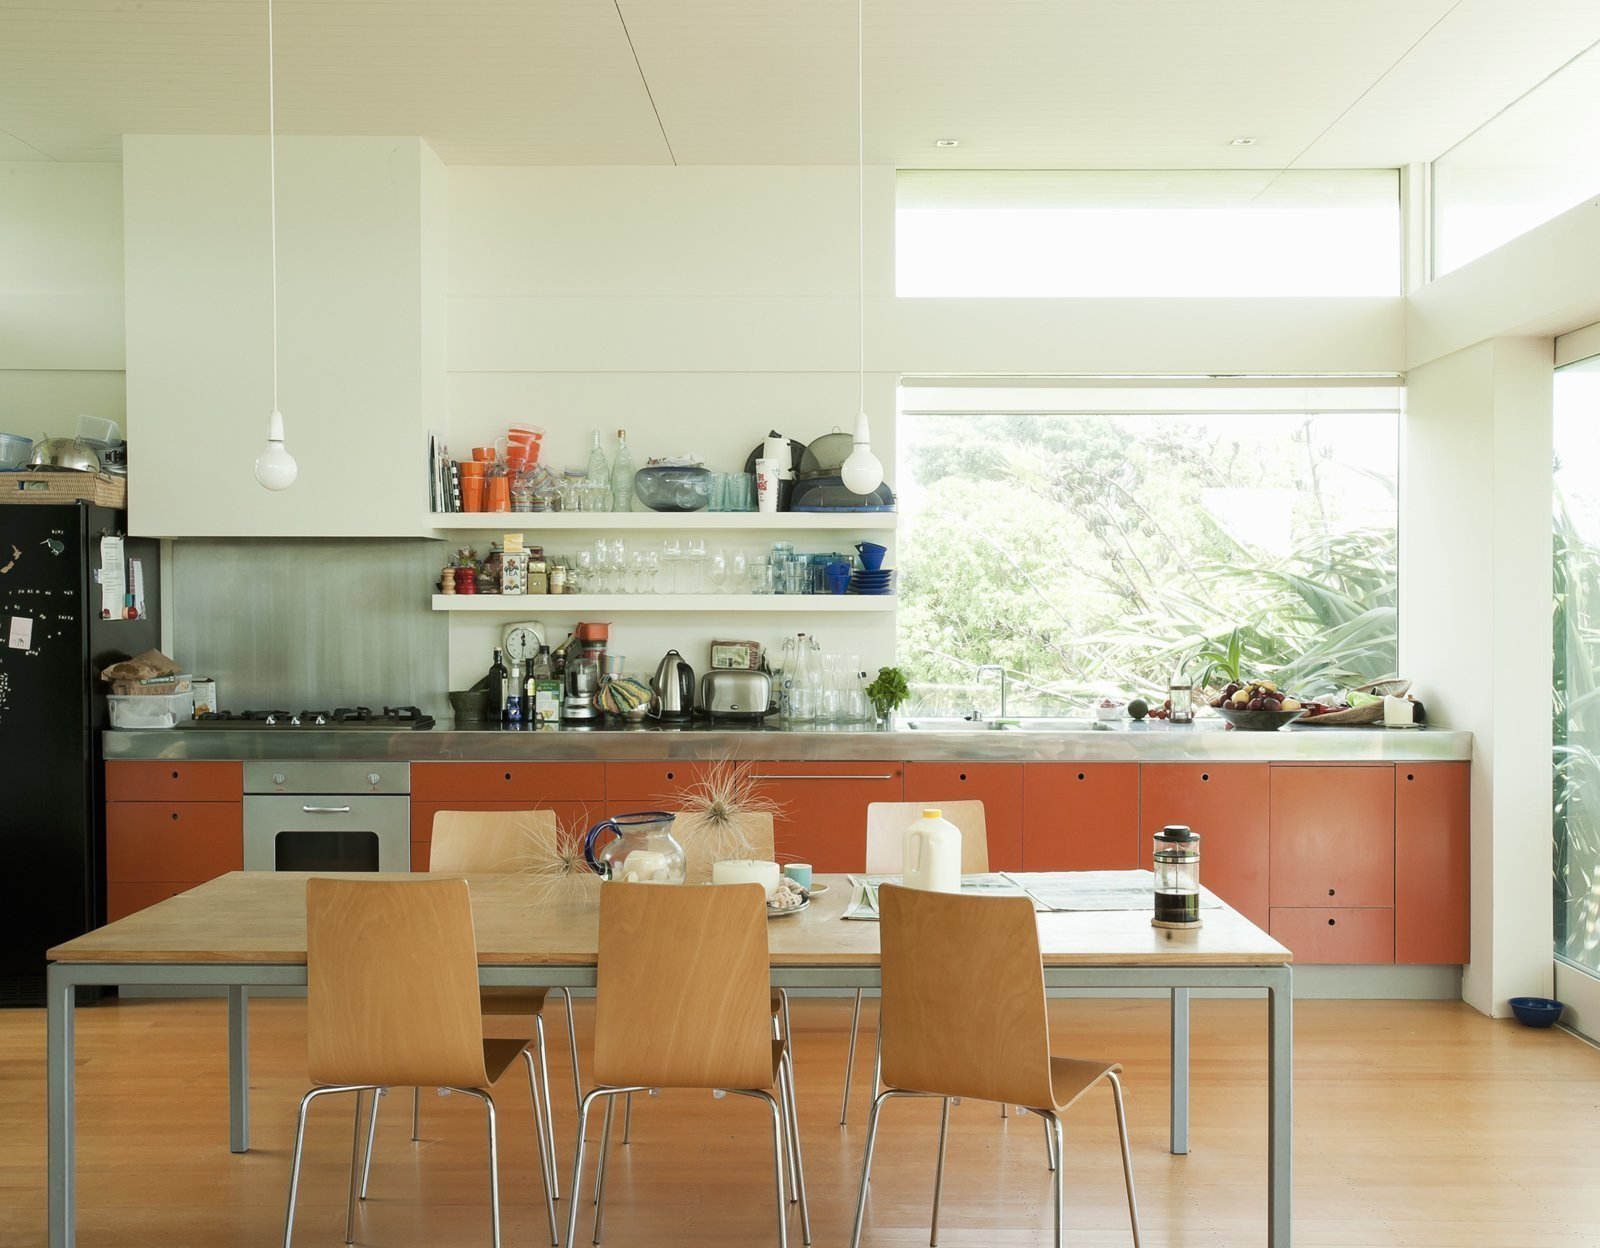 Kitchen, Light Hardwood, Refrigerator, Dishwasher, Metal, Recessed, Range, Colorful, Pendant, Wall Oven, Metal, Open, and Drop In New Zealand architect Gerald Parsonson and his wife, Kate, designed their vacation beach home in Paraparaumu with an open-plan kitchen with open shelves, bar light bulbs, and bright orange MDF cabinets.  Best Kitchen Recessed Drop In Colorful Photos from 12 Electrifying Kitchens That Are Unapologetic About Color